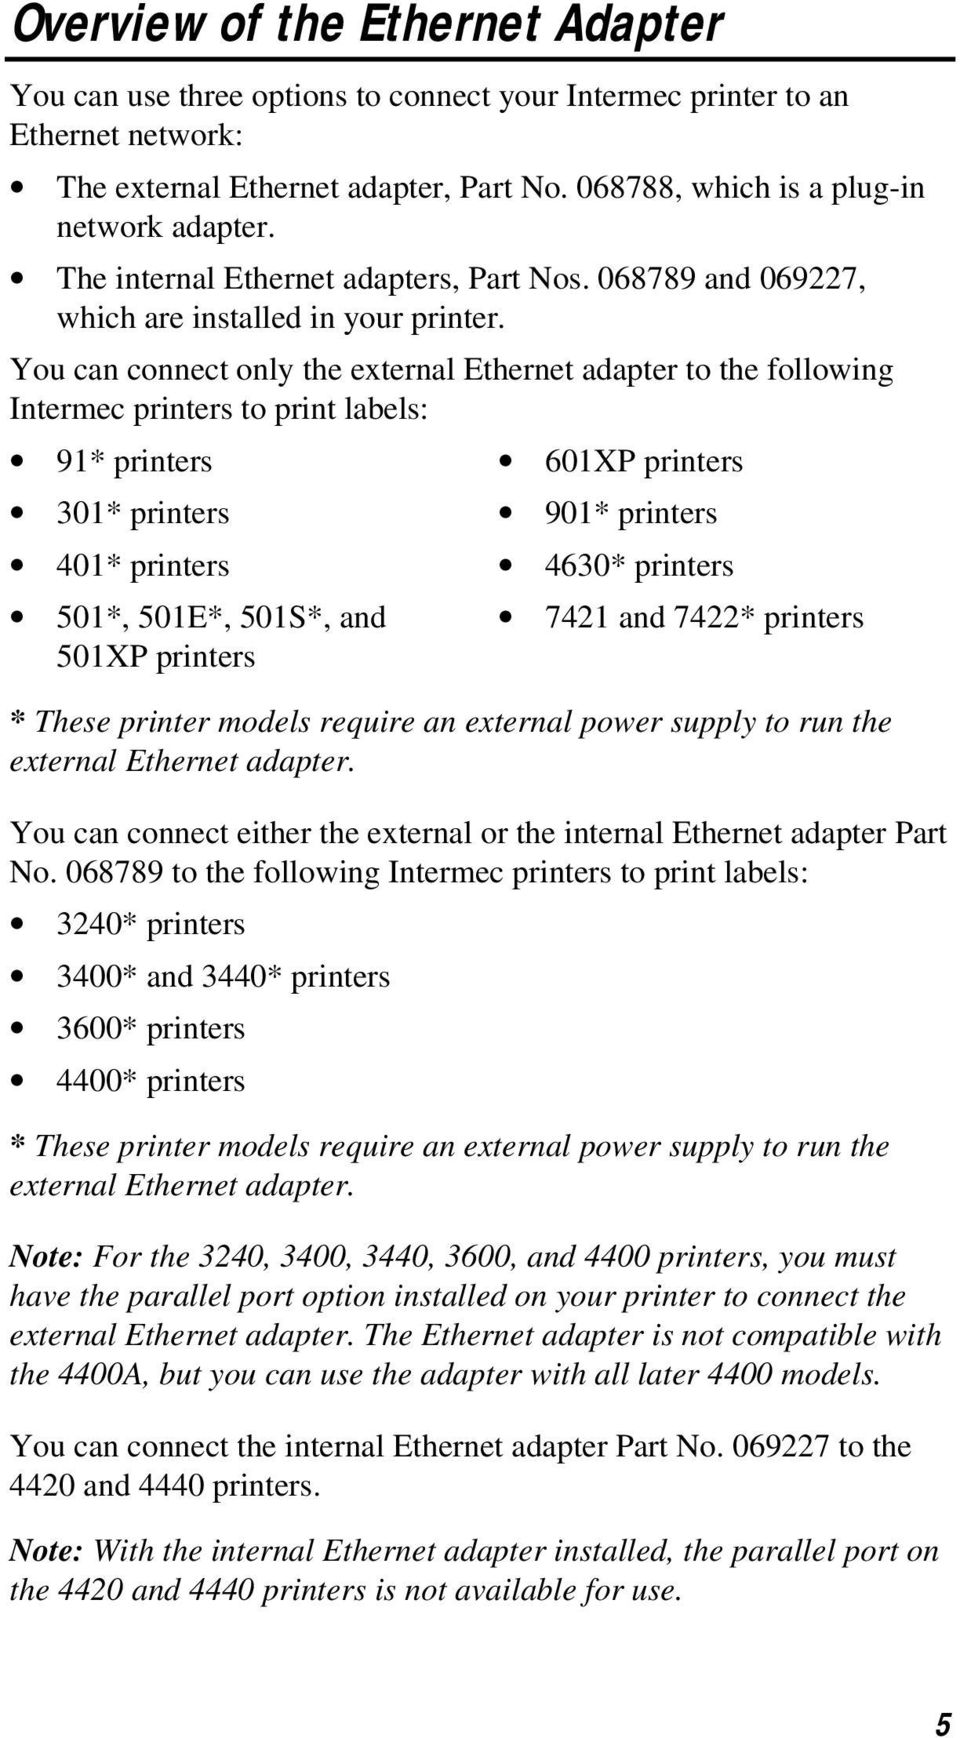 You can connect only the external Ethernet adapter to the following Intermec printers to print labels: 91* printers 601XP printers 301* printers 901* printers 401* printers 4630* printers 501*,